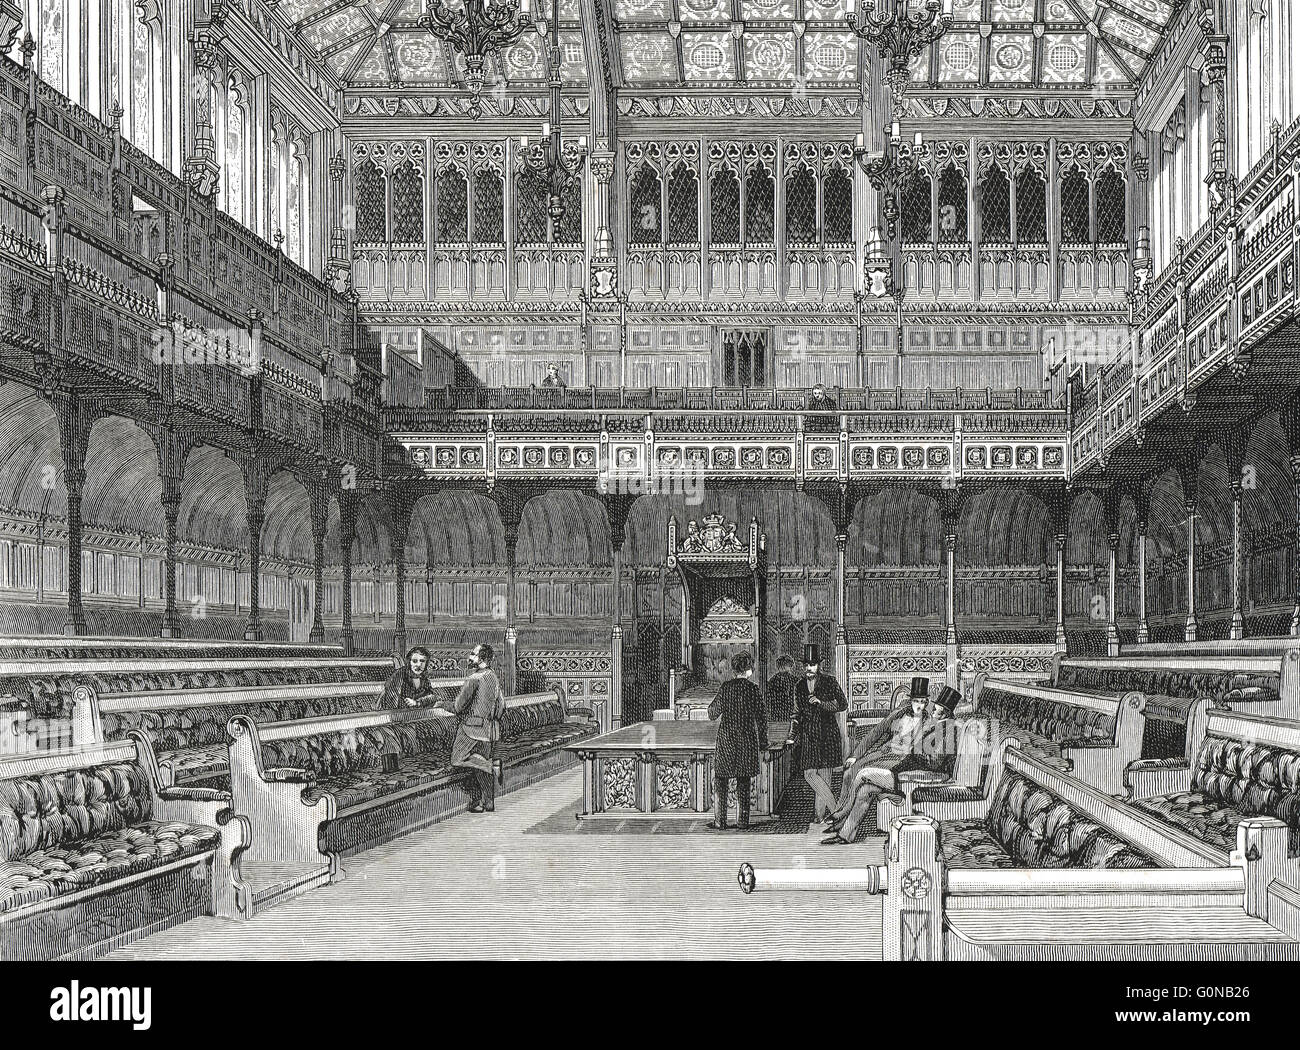 Interior of The House of Commons in the 19th Century - Stock Image